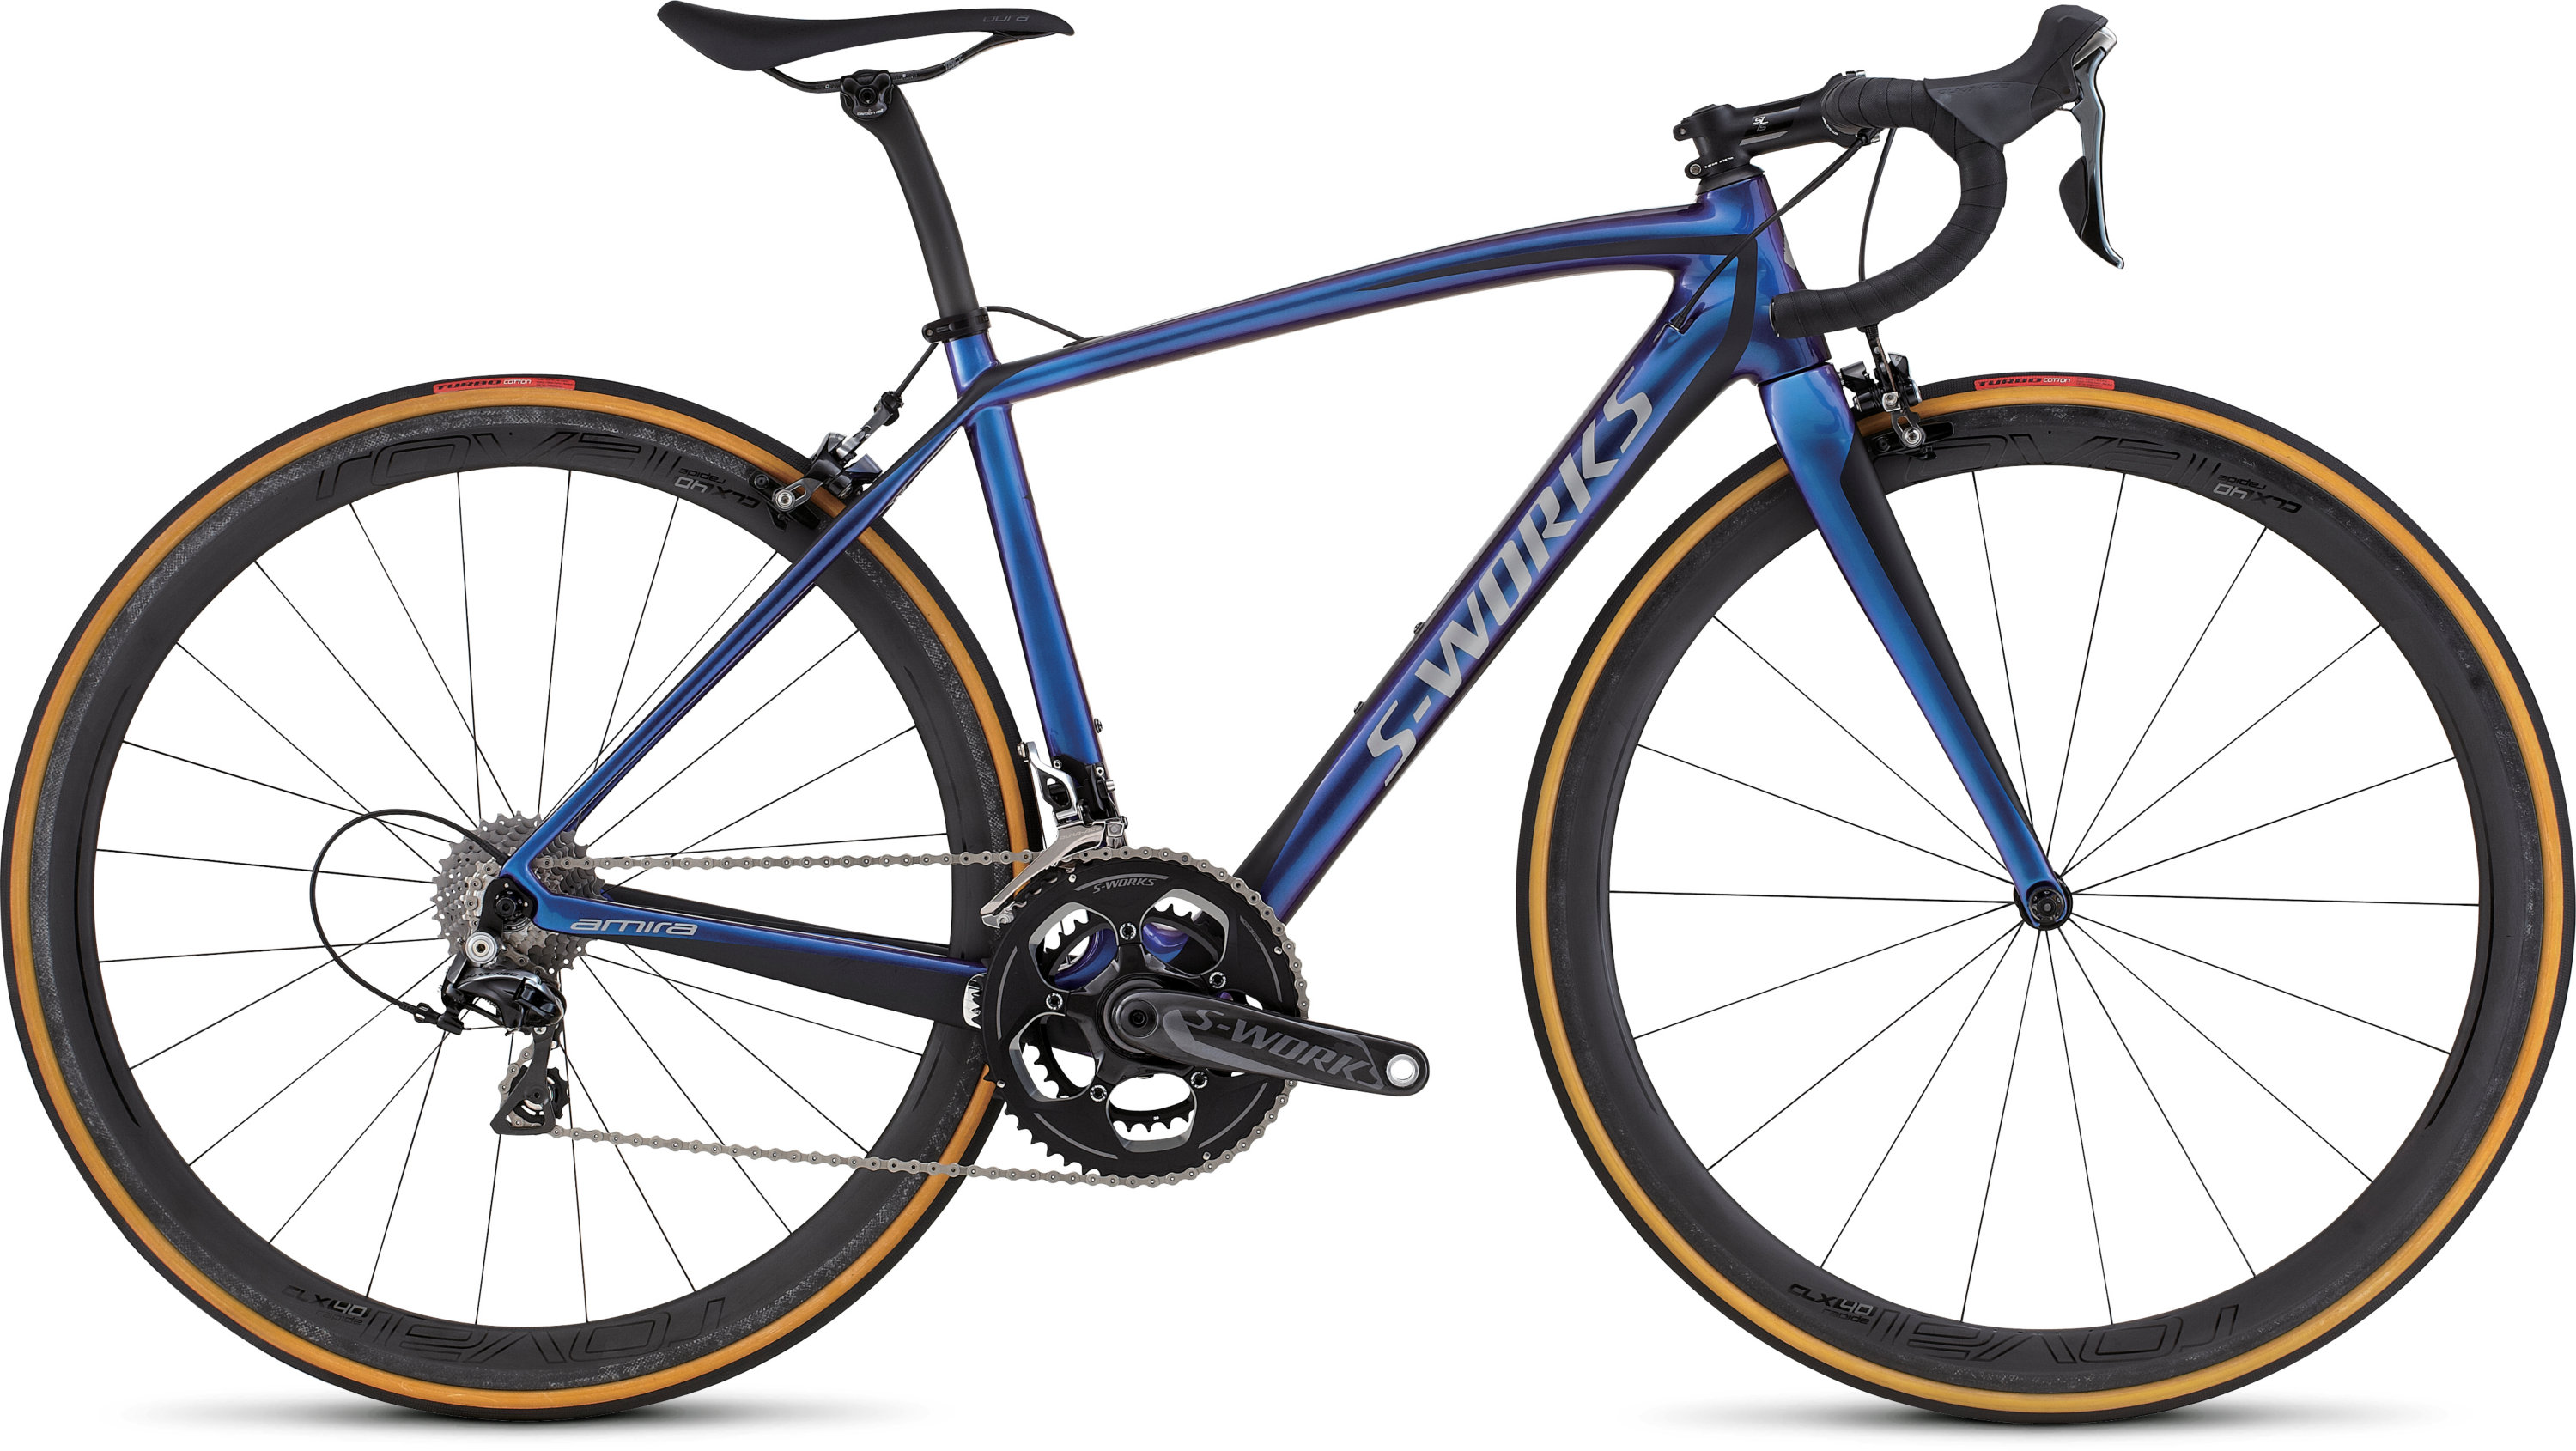 SPECIALIZED SW AMIRA SL4 CMLN/BLK/SIL 44 - Bikedreams & Dustbikes